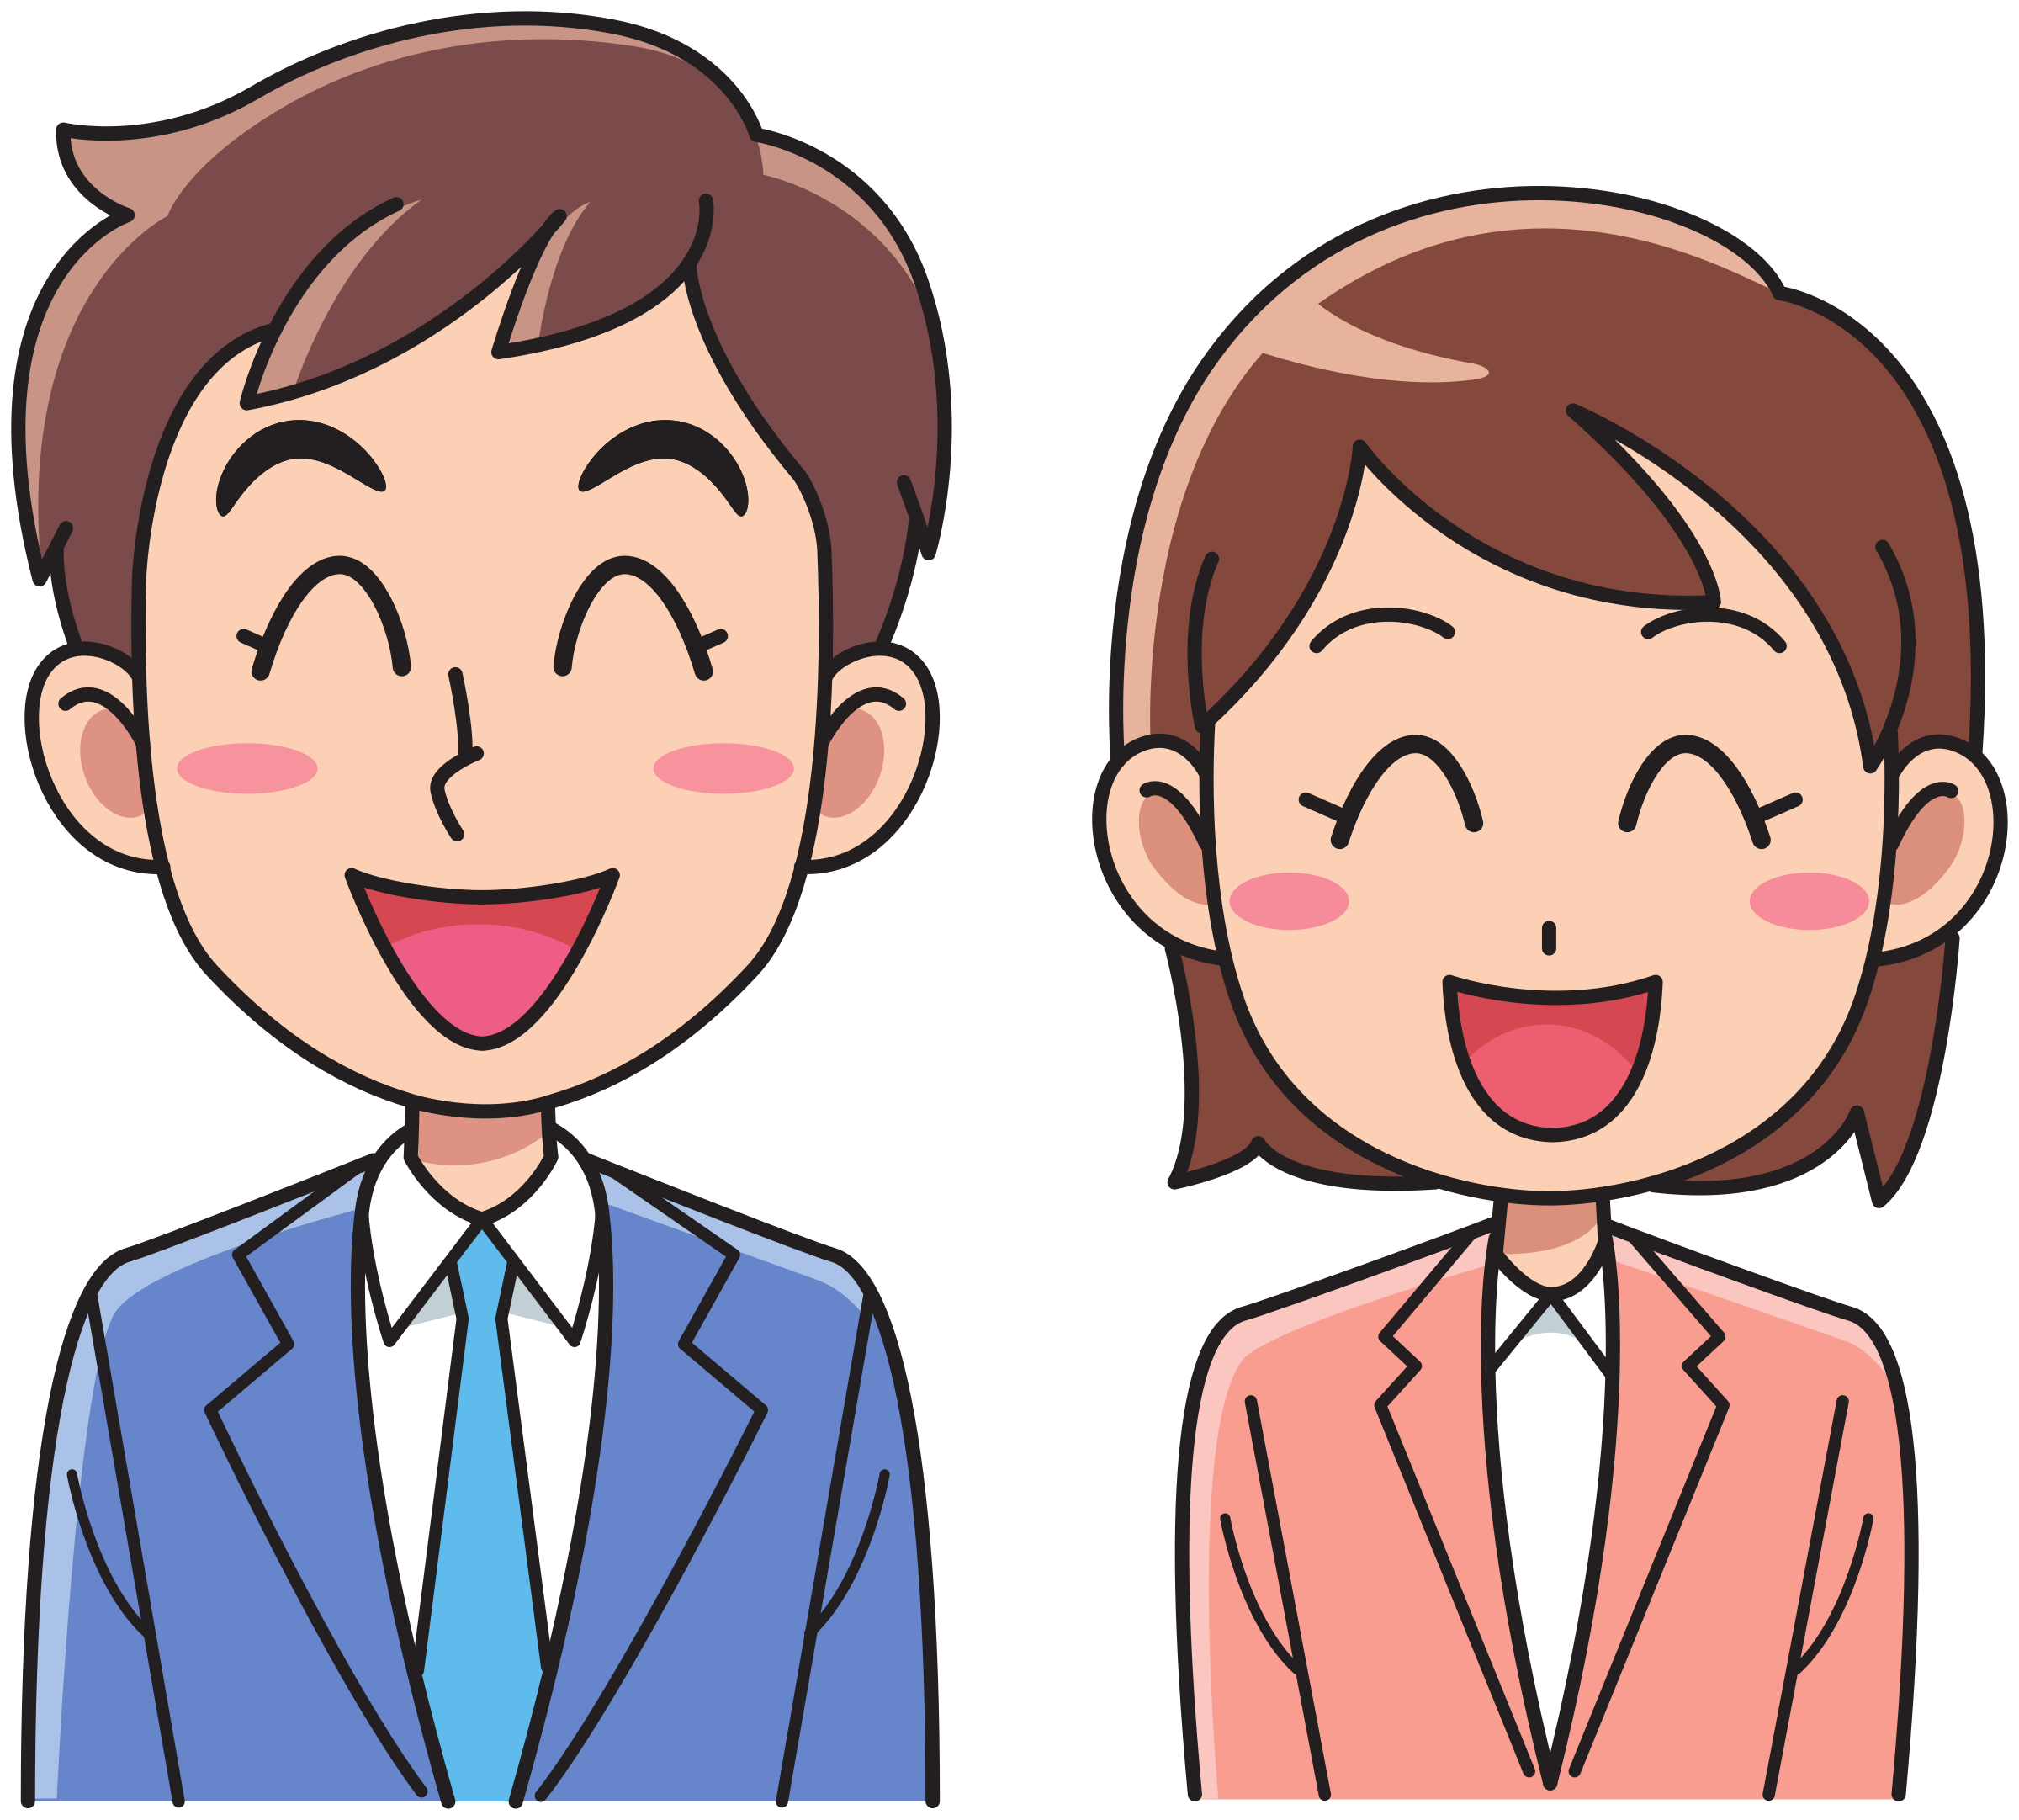 People laughing clipart graphic free library Clipart - Business man and woman - laughing graphic free library